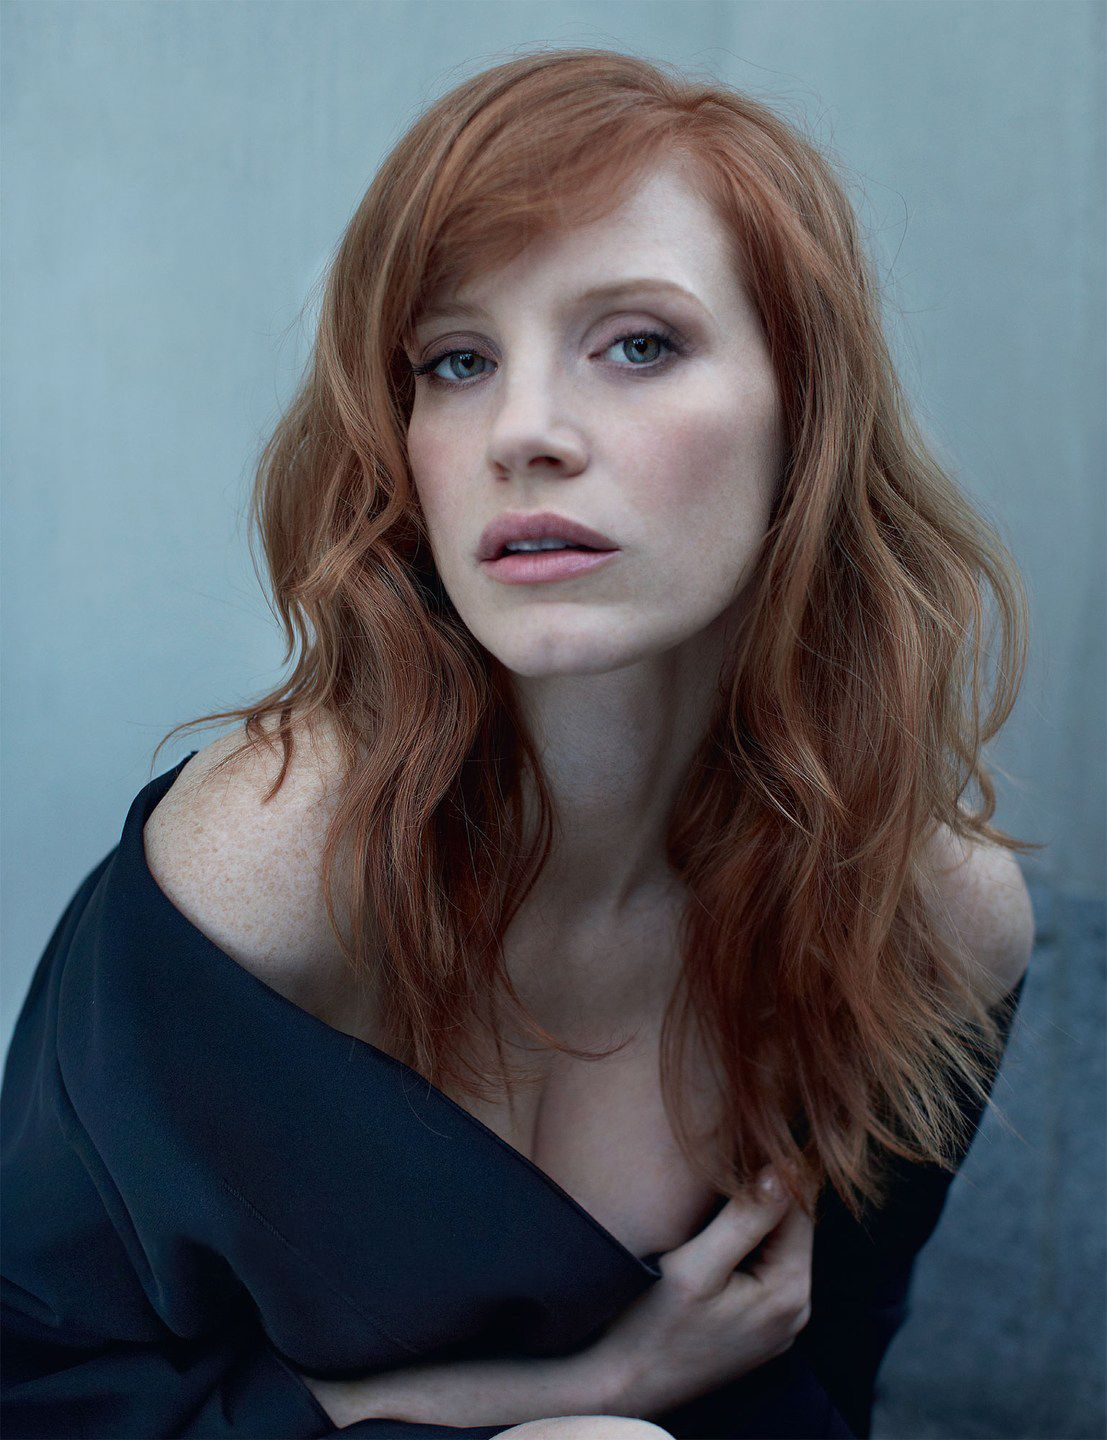 Jessica Chastain interview: 'If I get a role it's because I fought for it'